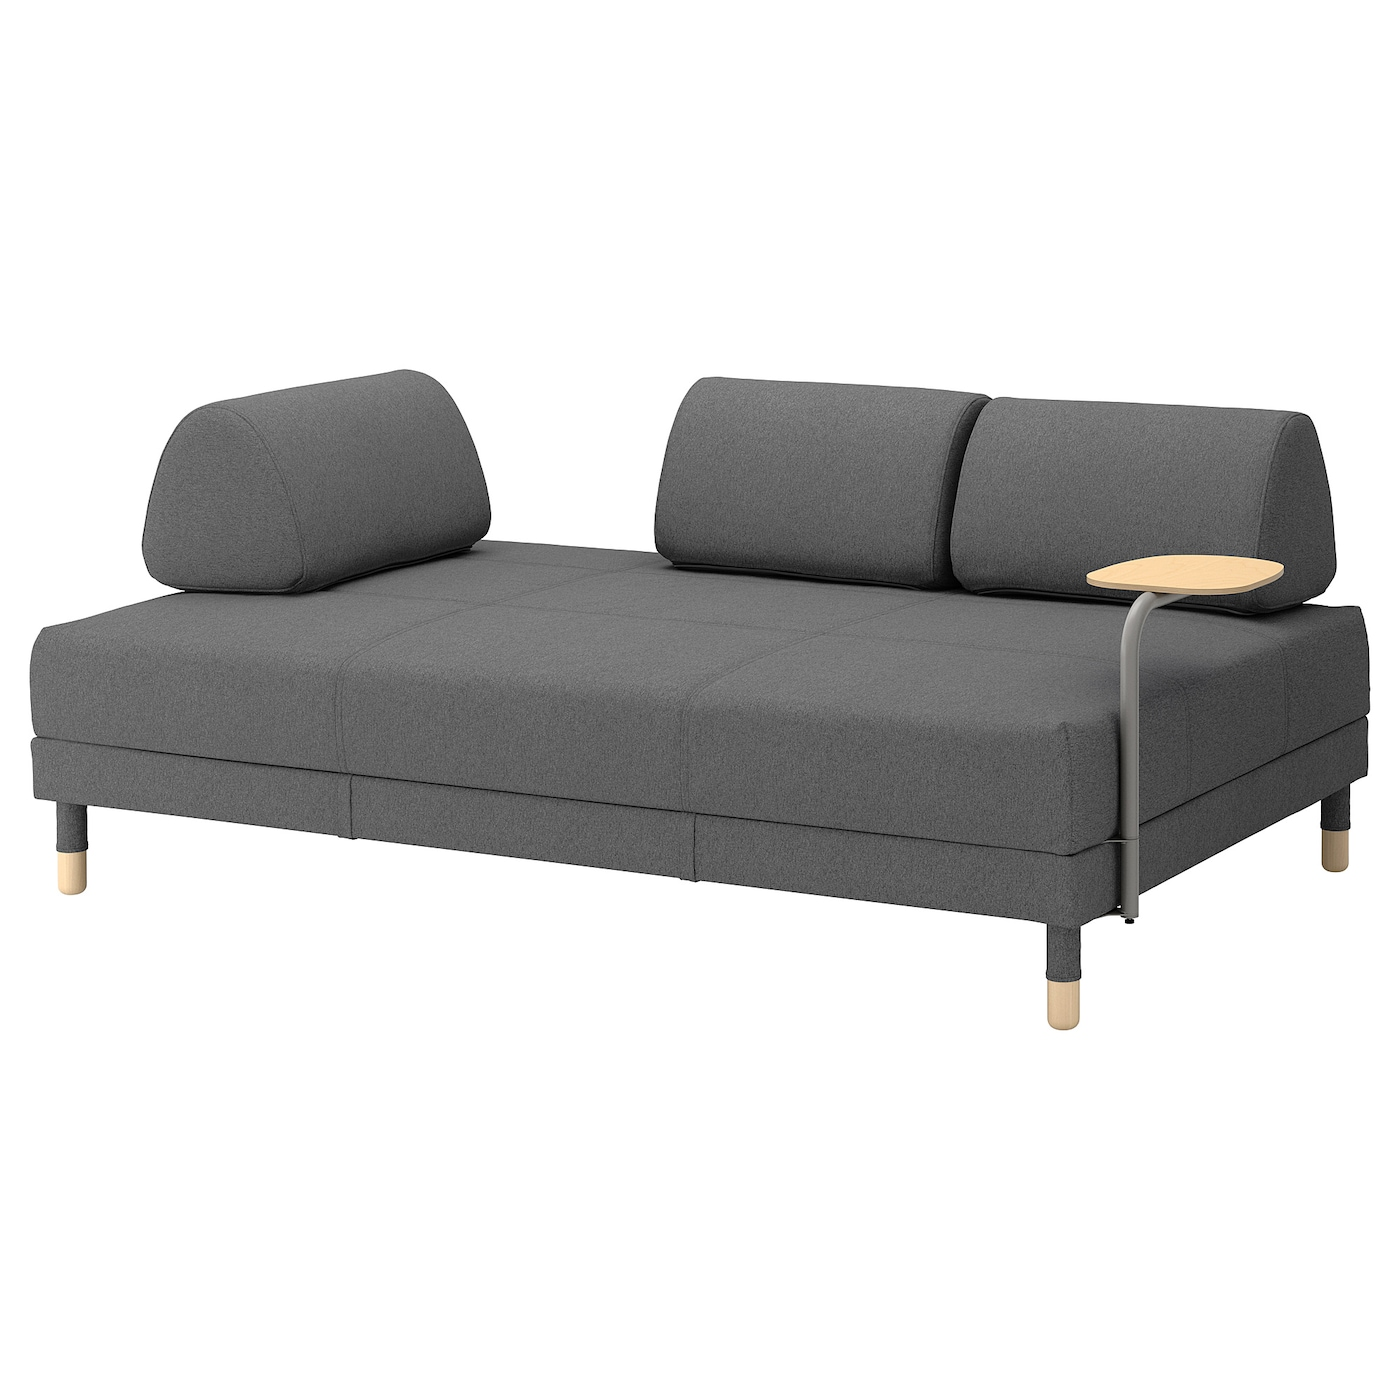 Ikea flottebo sofa bed with side table